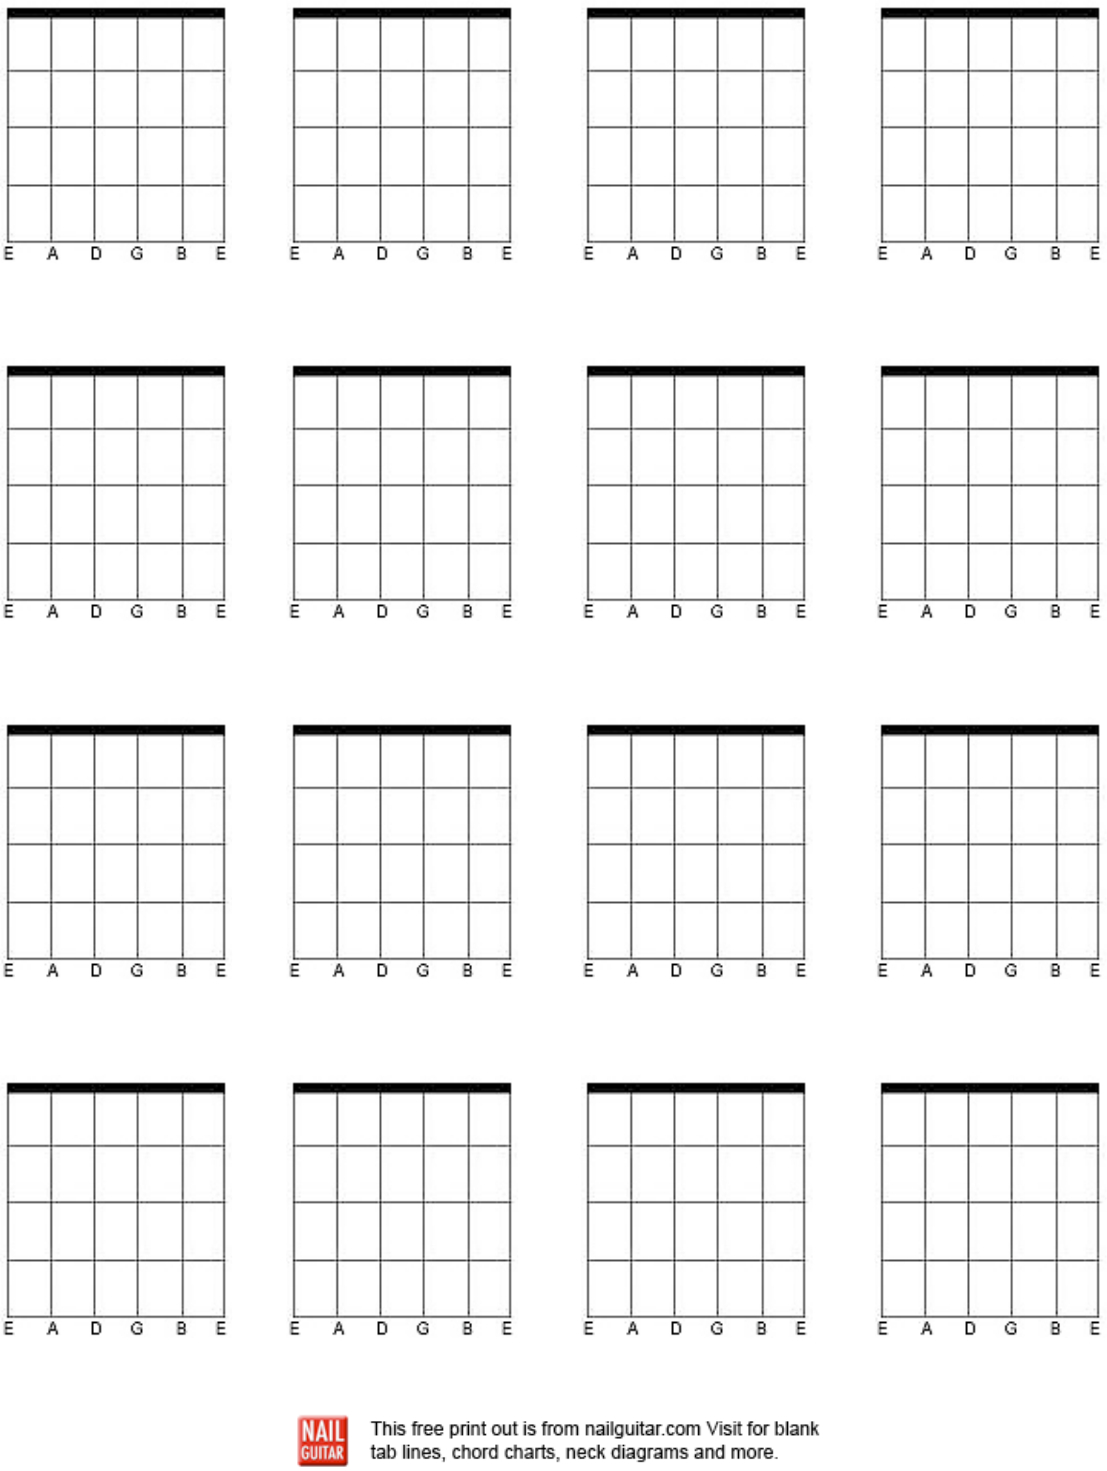 Download Blank Bass Guitar Chord Chart For Free - Formtemplate - Free Printable Blank Guitar Chord Charts